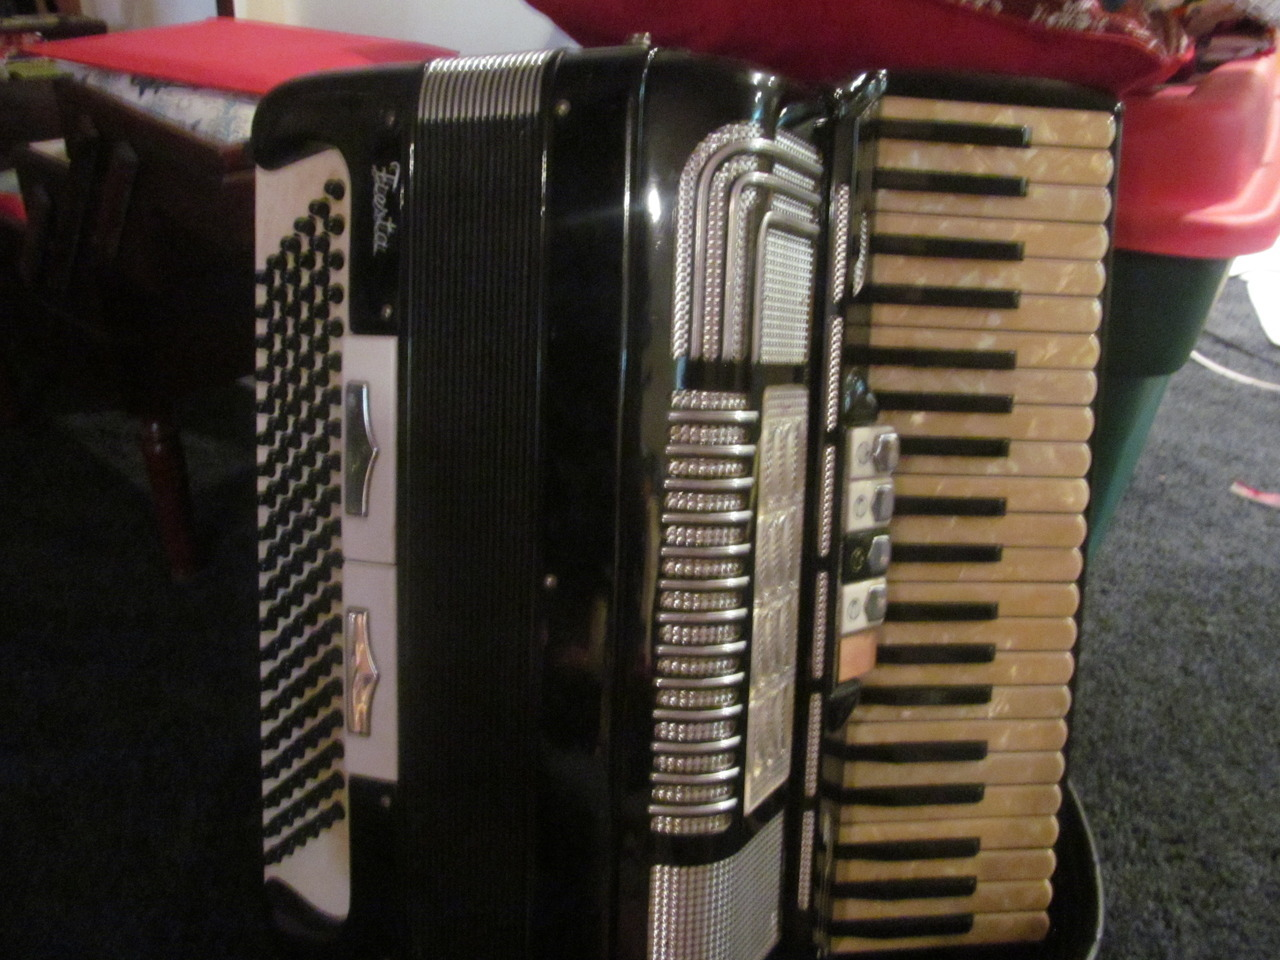 Just some random photos of my instruments. I didn't bother taking any pictures of my keyboard because it's not much to look at, haha.